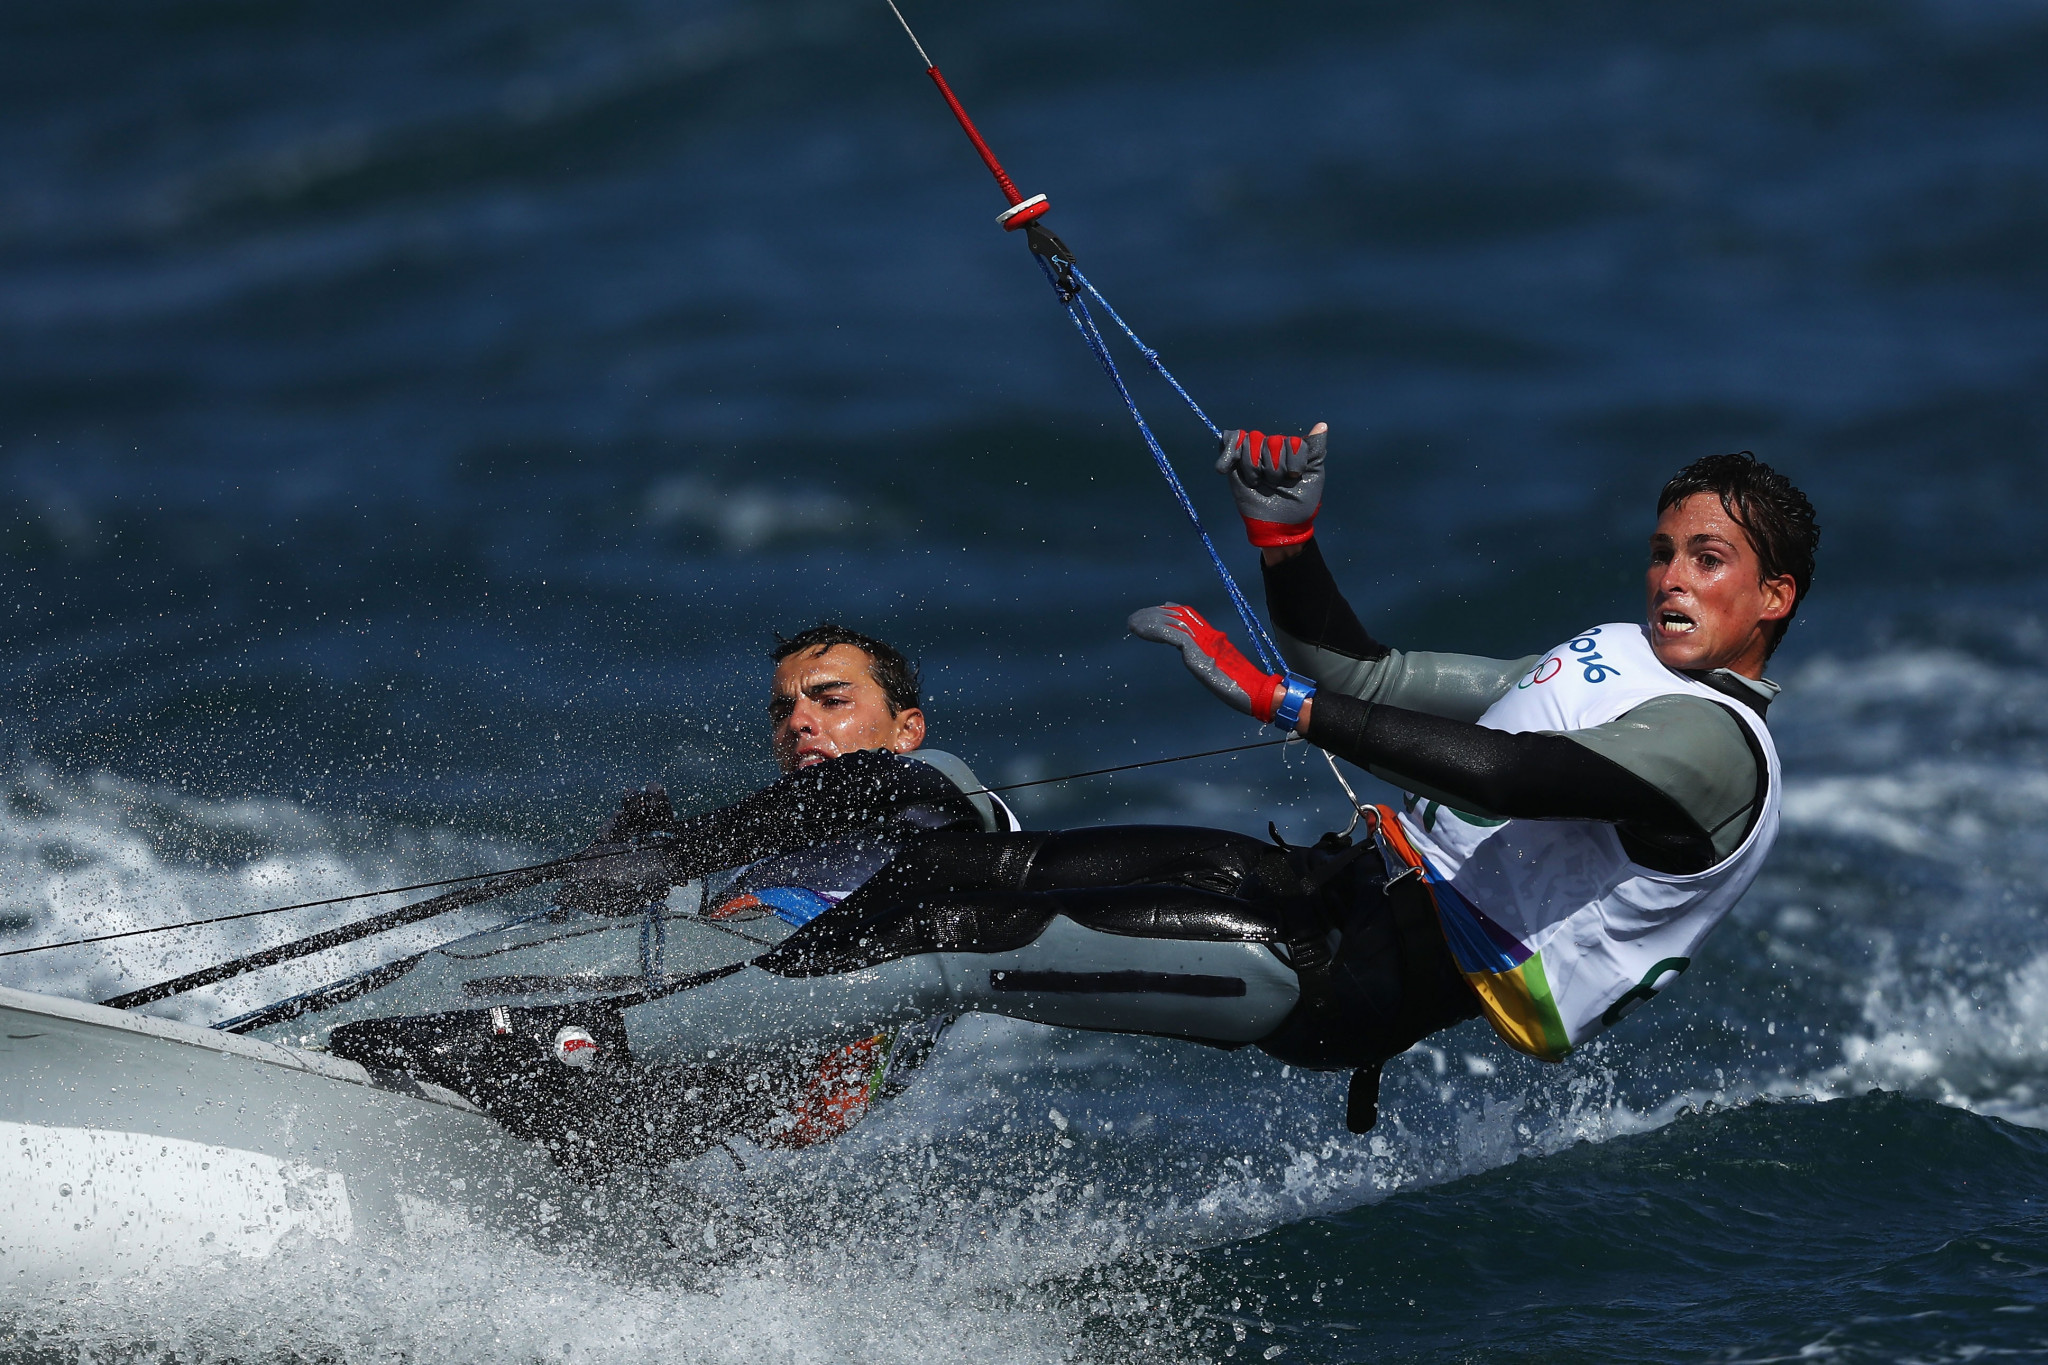 Spain's Jordi Xammar, left, and Nicolás Rodríguez have a one-point advantage at the summit of the men's standings ©Getty Images